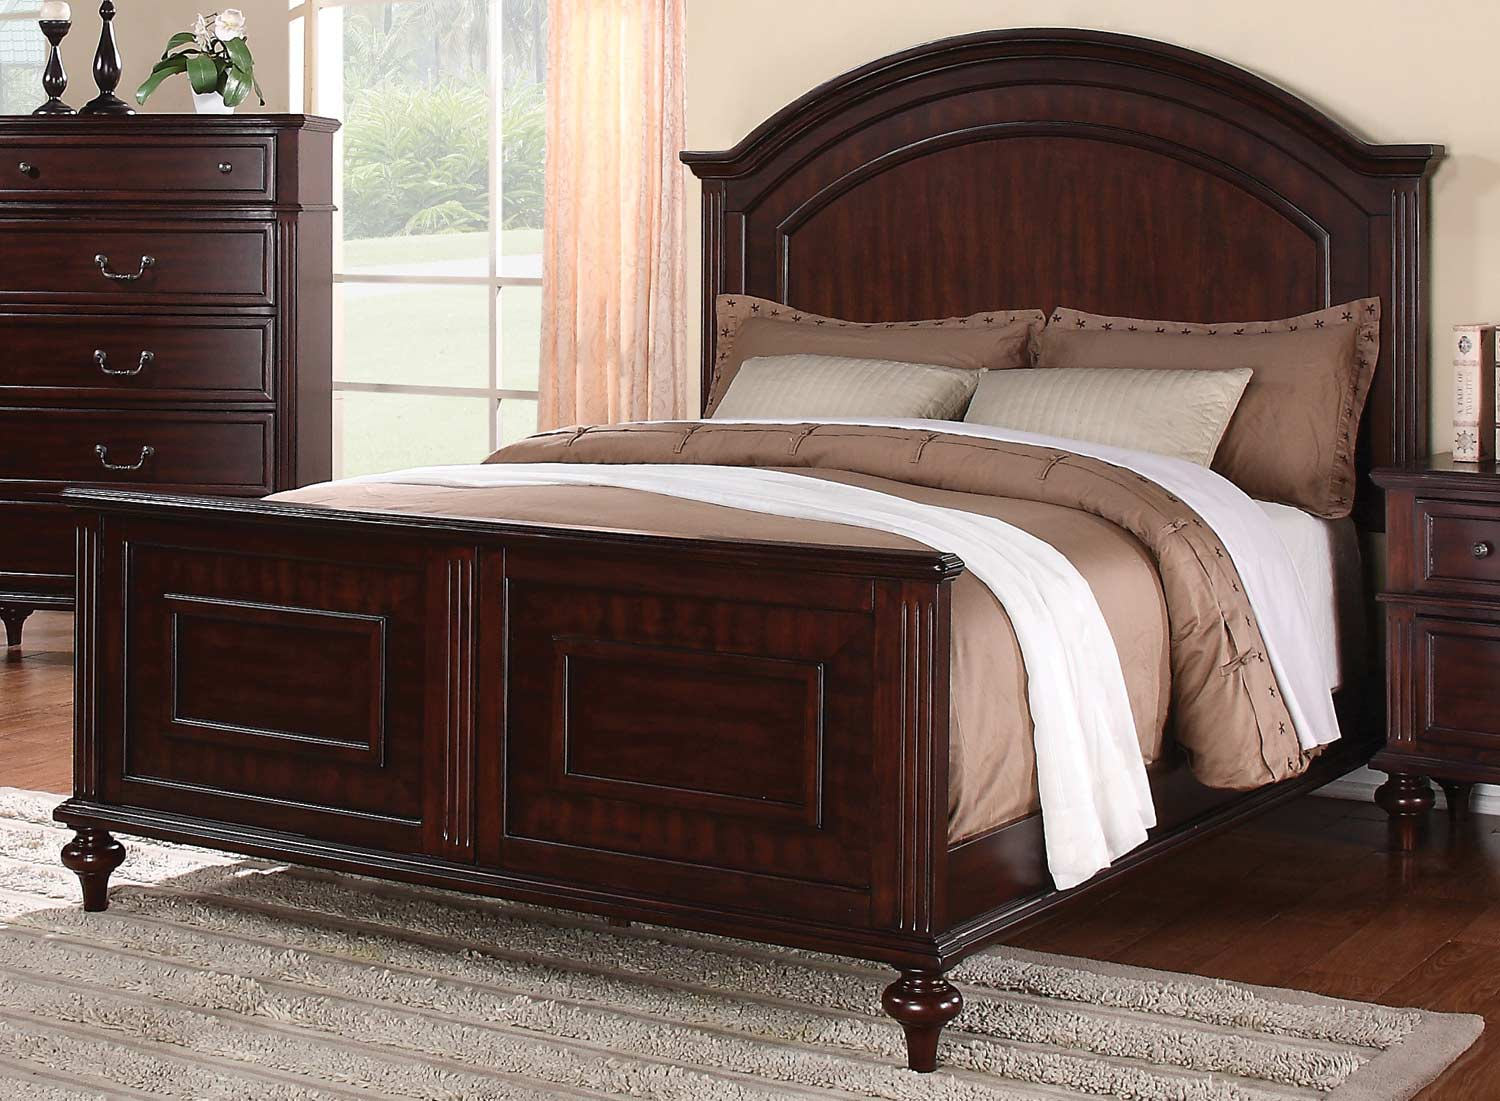 Coaster Emily Bed - Brown Cherry